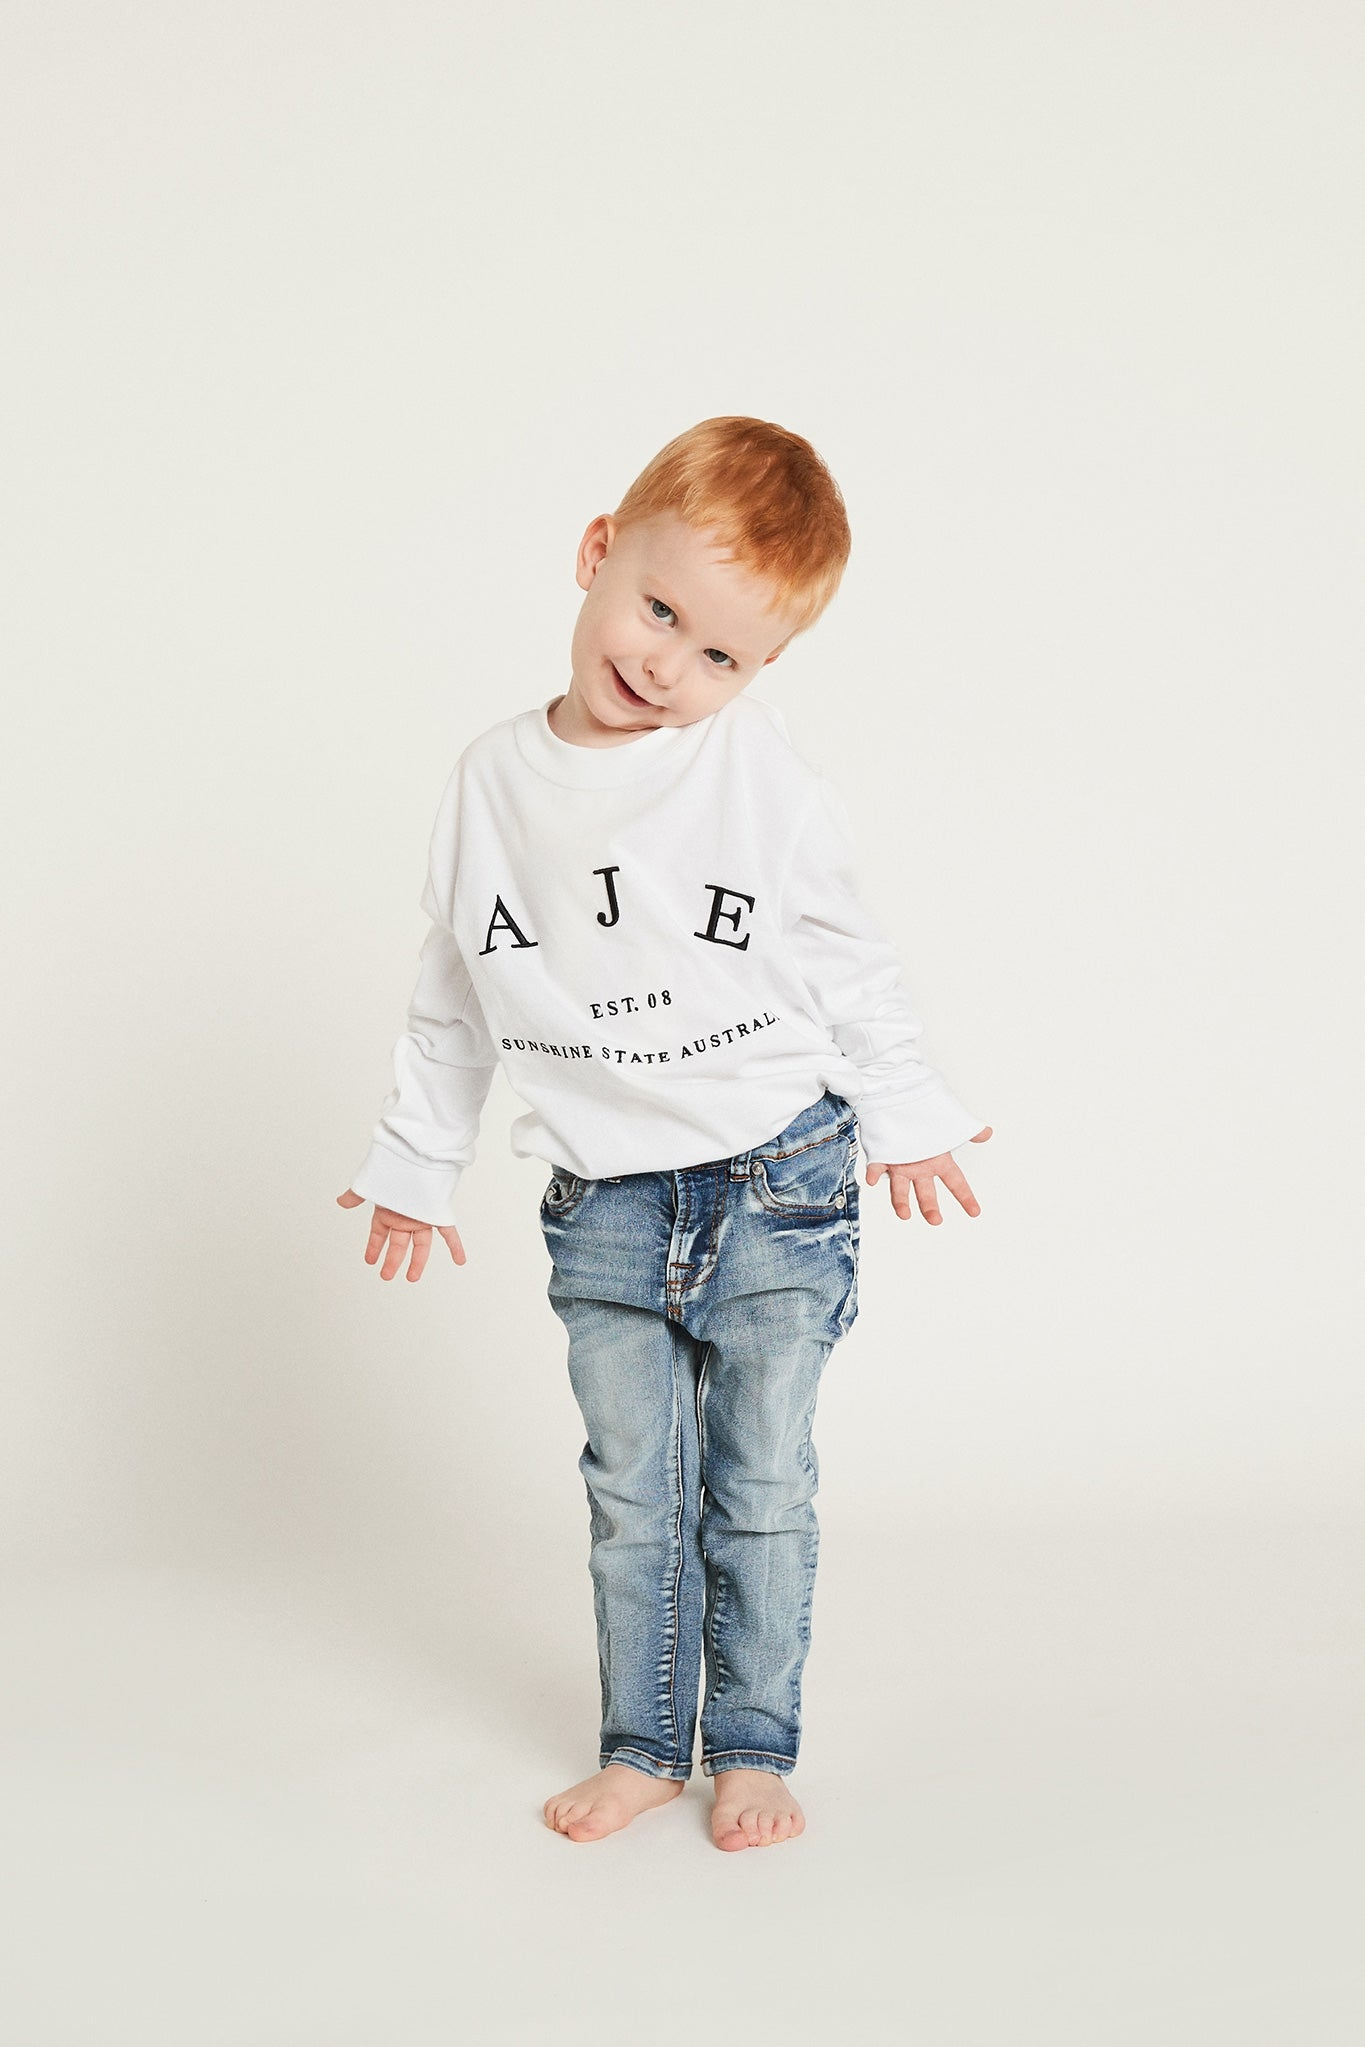 Aje Kids Heritage Logo Tee Product View